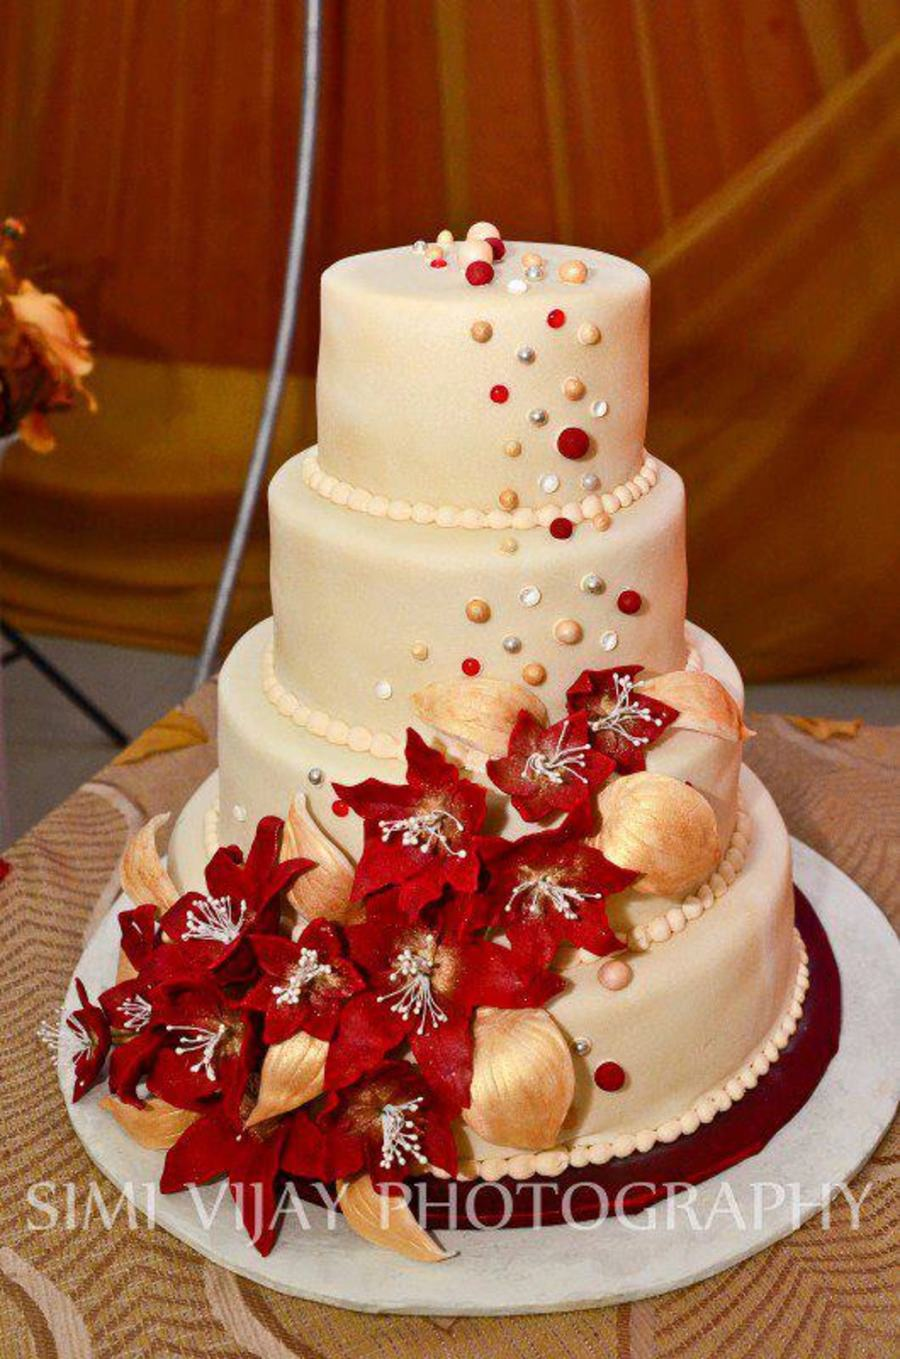 Fruit Cake With Fondant Flowers And Hand Rolled Balls Dusted With Lustre Dust Edible Gems Large Silver Dragees Airbrushed With Pearl Shee on Cake Central